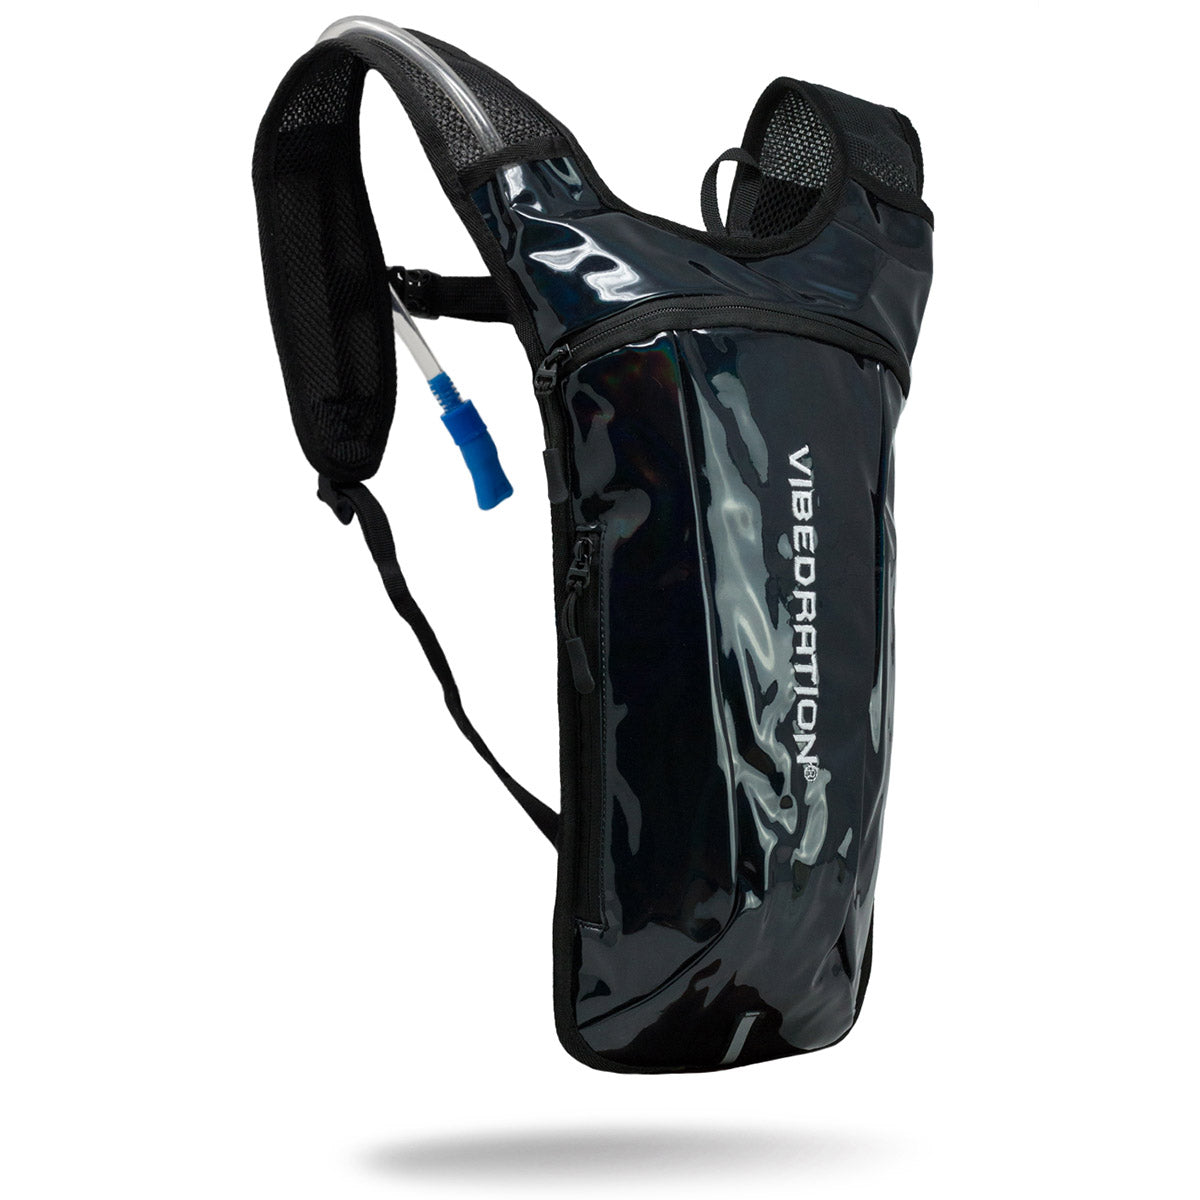 Black Holographic Rave Hydration Water Pack with two liter water bladder